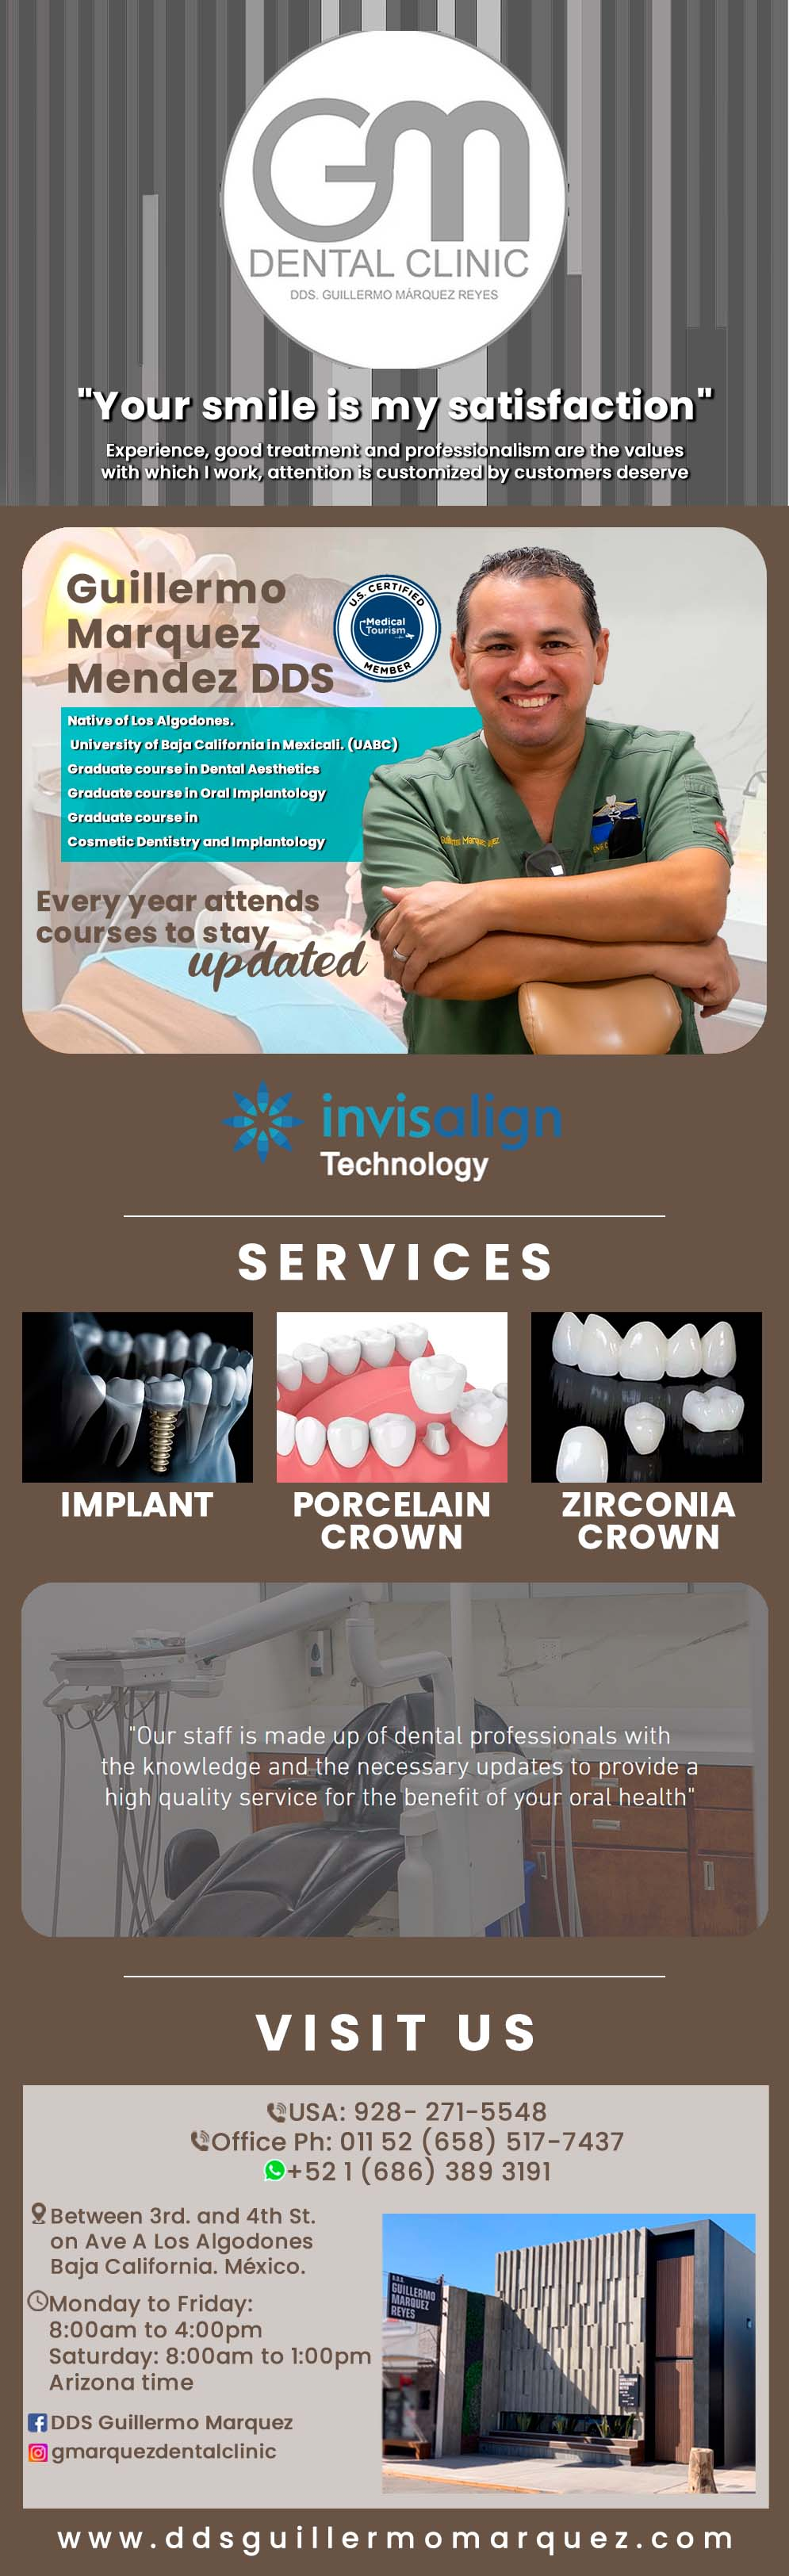 Dentist DDS Dr. Guillermo Marquez Reyes in Algodones  in Algodones  DENTIST D.D.S. DR. GUILLERMO MARQUEZ REYES                     dentist dentista dds doctor dr consultorio clinic clinica implants dental orthodontics metal crowns white filling set of acrylic dentures set of porcelain dentures  flexible partial acrylic partial metal partial laser whitening root canal post cleaning deep cleaning bleaching extraction mini implants porcelain crown gold crown veneers  widsom toogh extraction digital